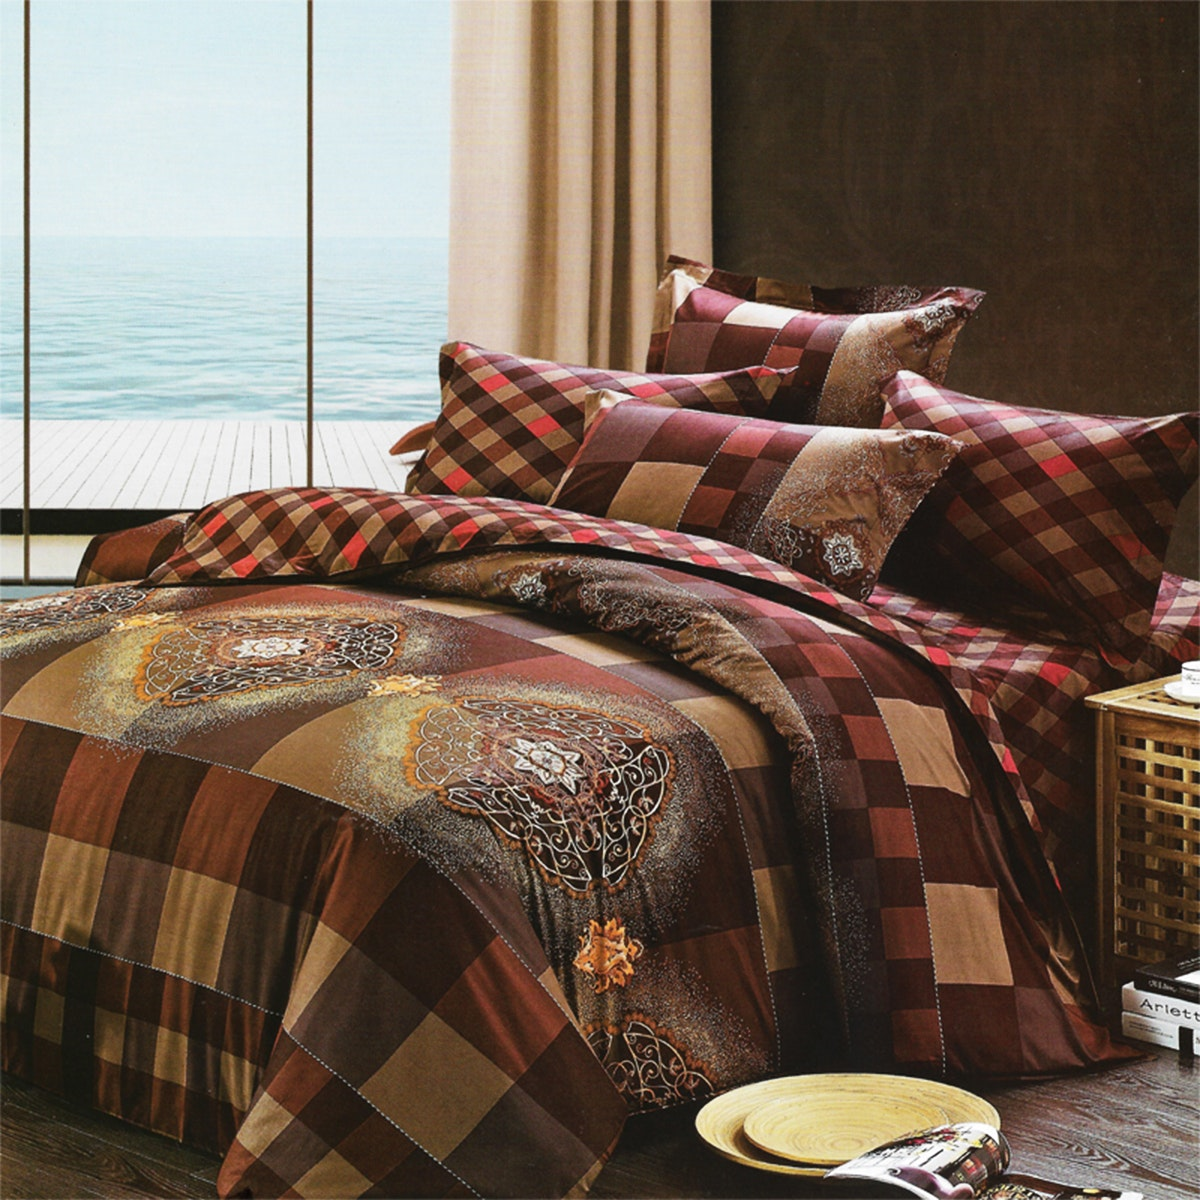 Sleep Buddy Set Sprei dan Bed Cover Cool Choco Cotton Sateen 180x200x30